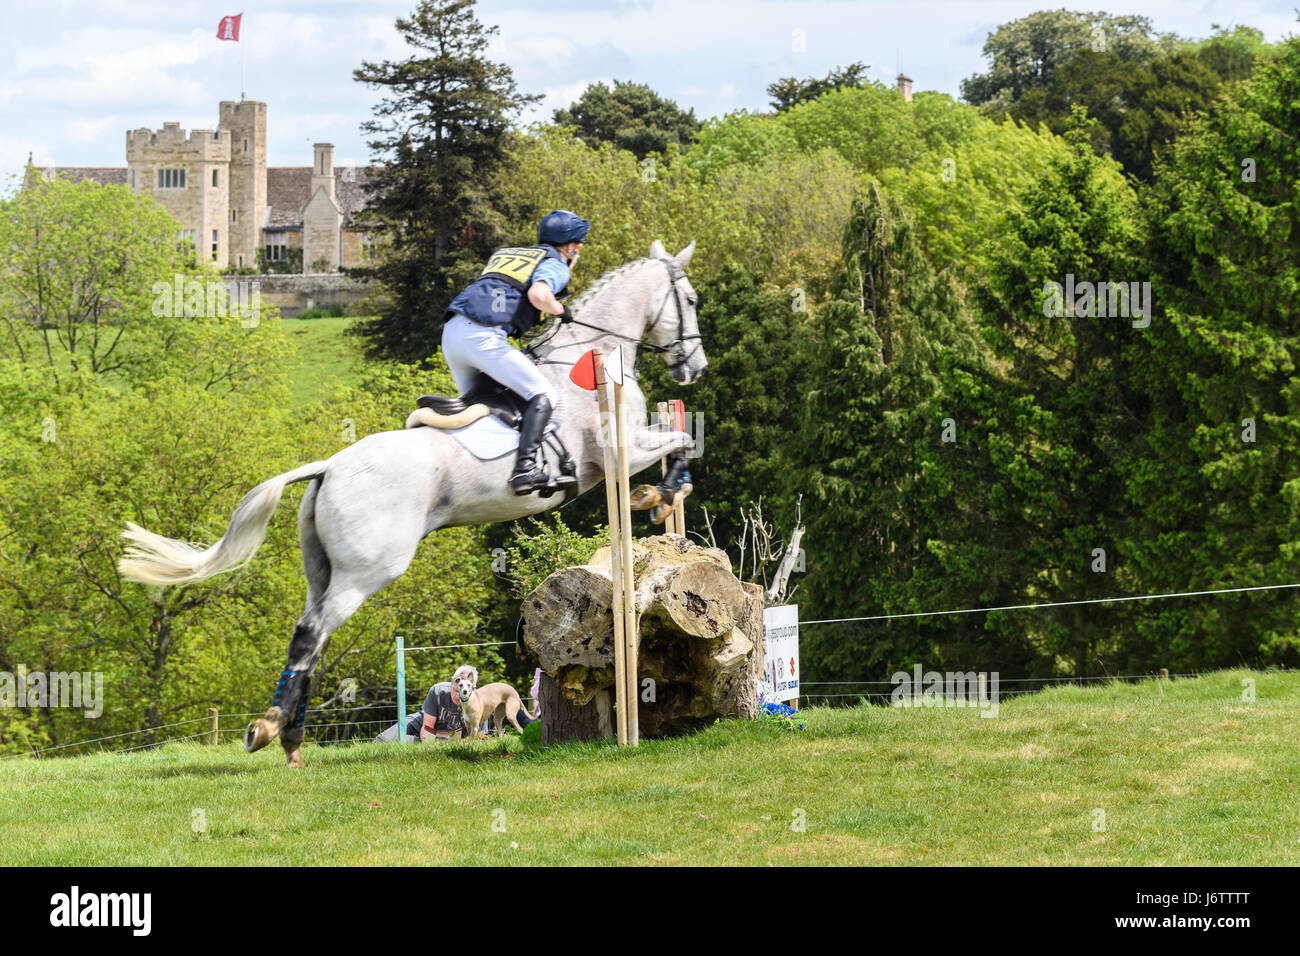 Rockingham Castle, Corby, UK. 21st May, 2017. Jack Ashworth and his horse Kafka clear a log obstacle with Rockingham Stock Photo